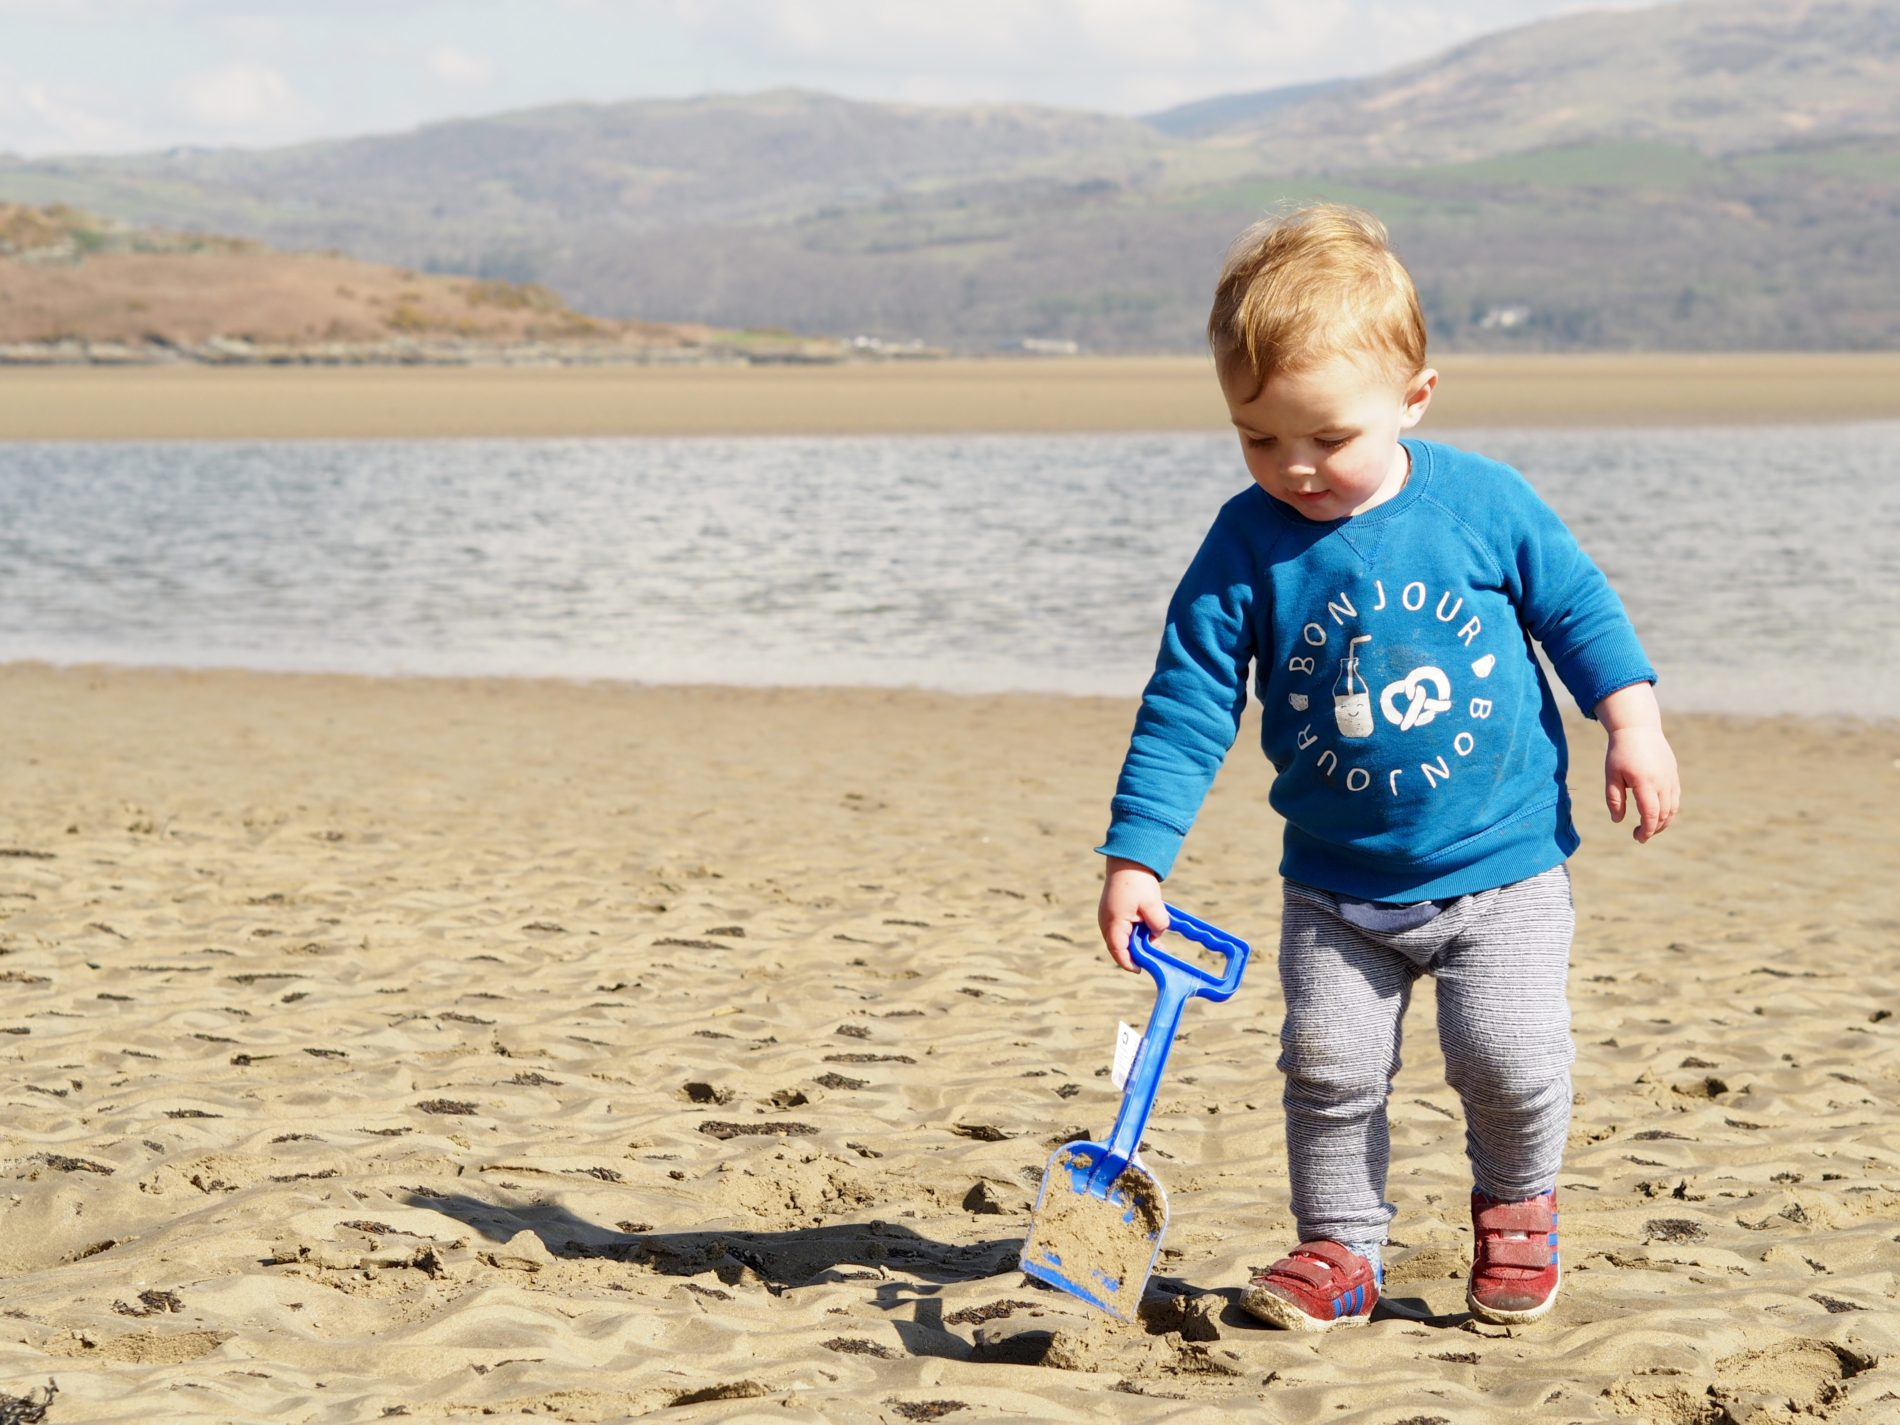 Family days out - planning a fossil hunting adventure on the Jurassic Coast